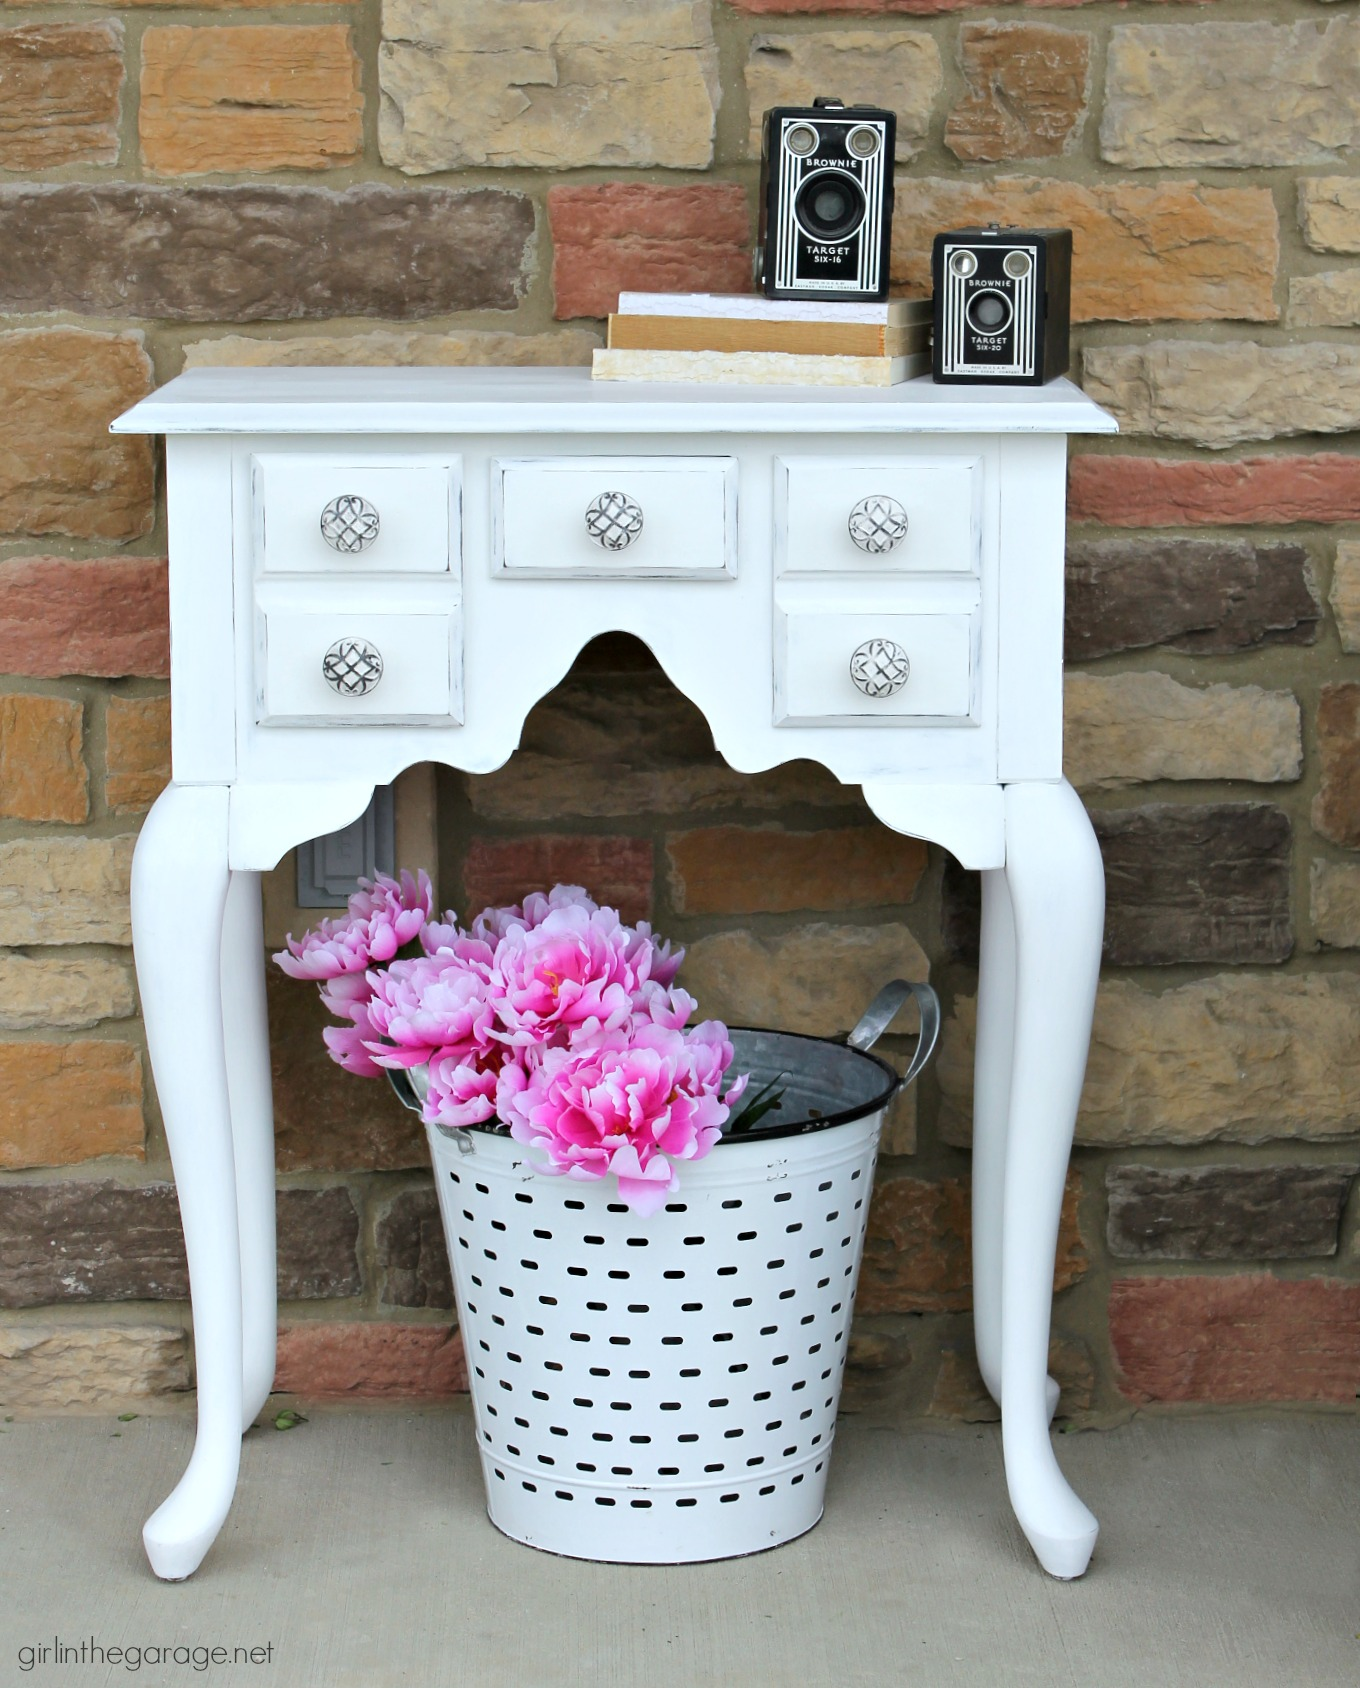 Thrifted console table makeover with Annie Sloan Chalk Paint and decoupage drawers - How to hide ink spills in drawers - DIY tutorial by Girl in the Garage